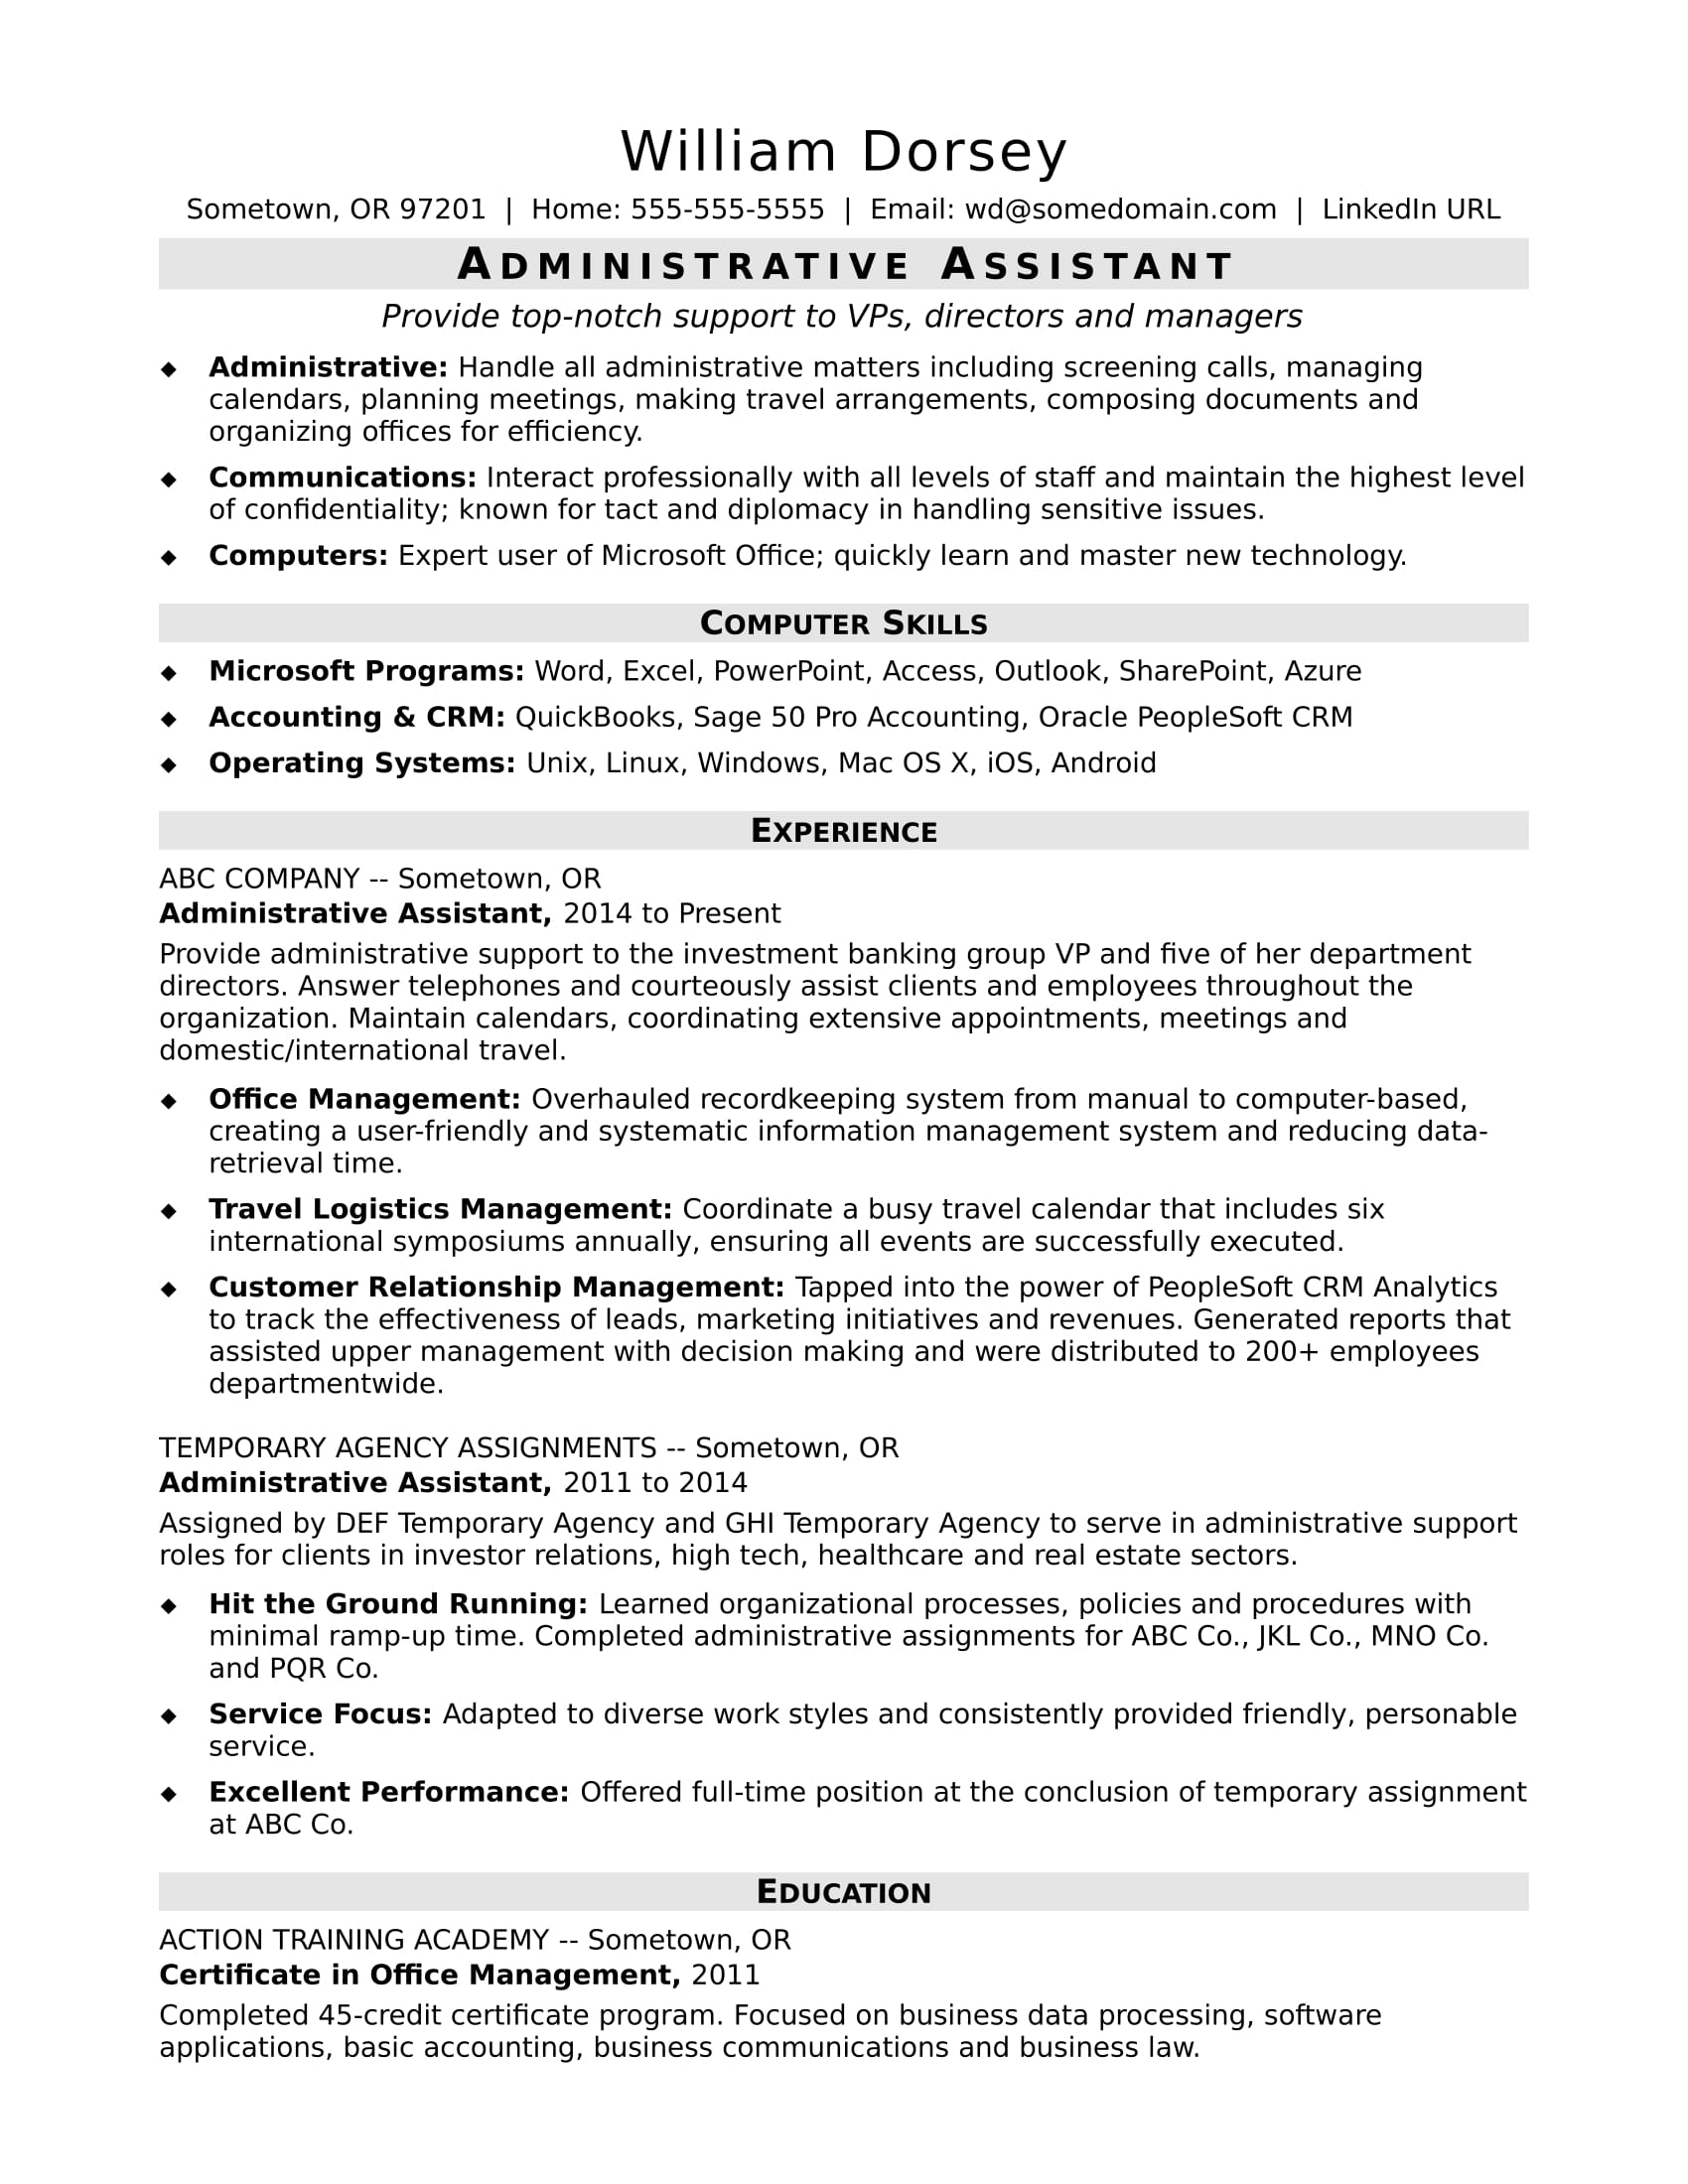 skills for administrative assistant resume